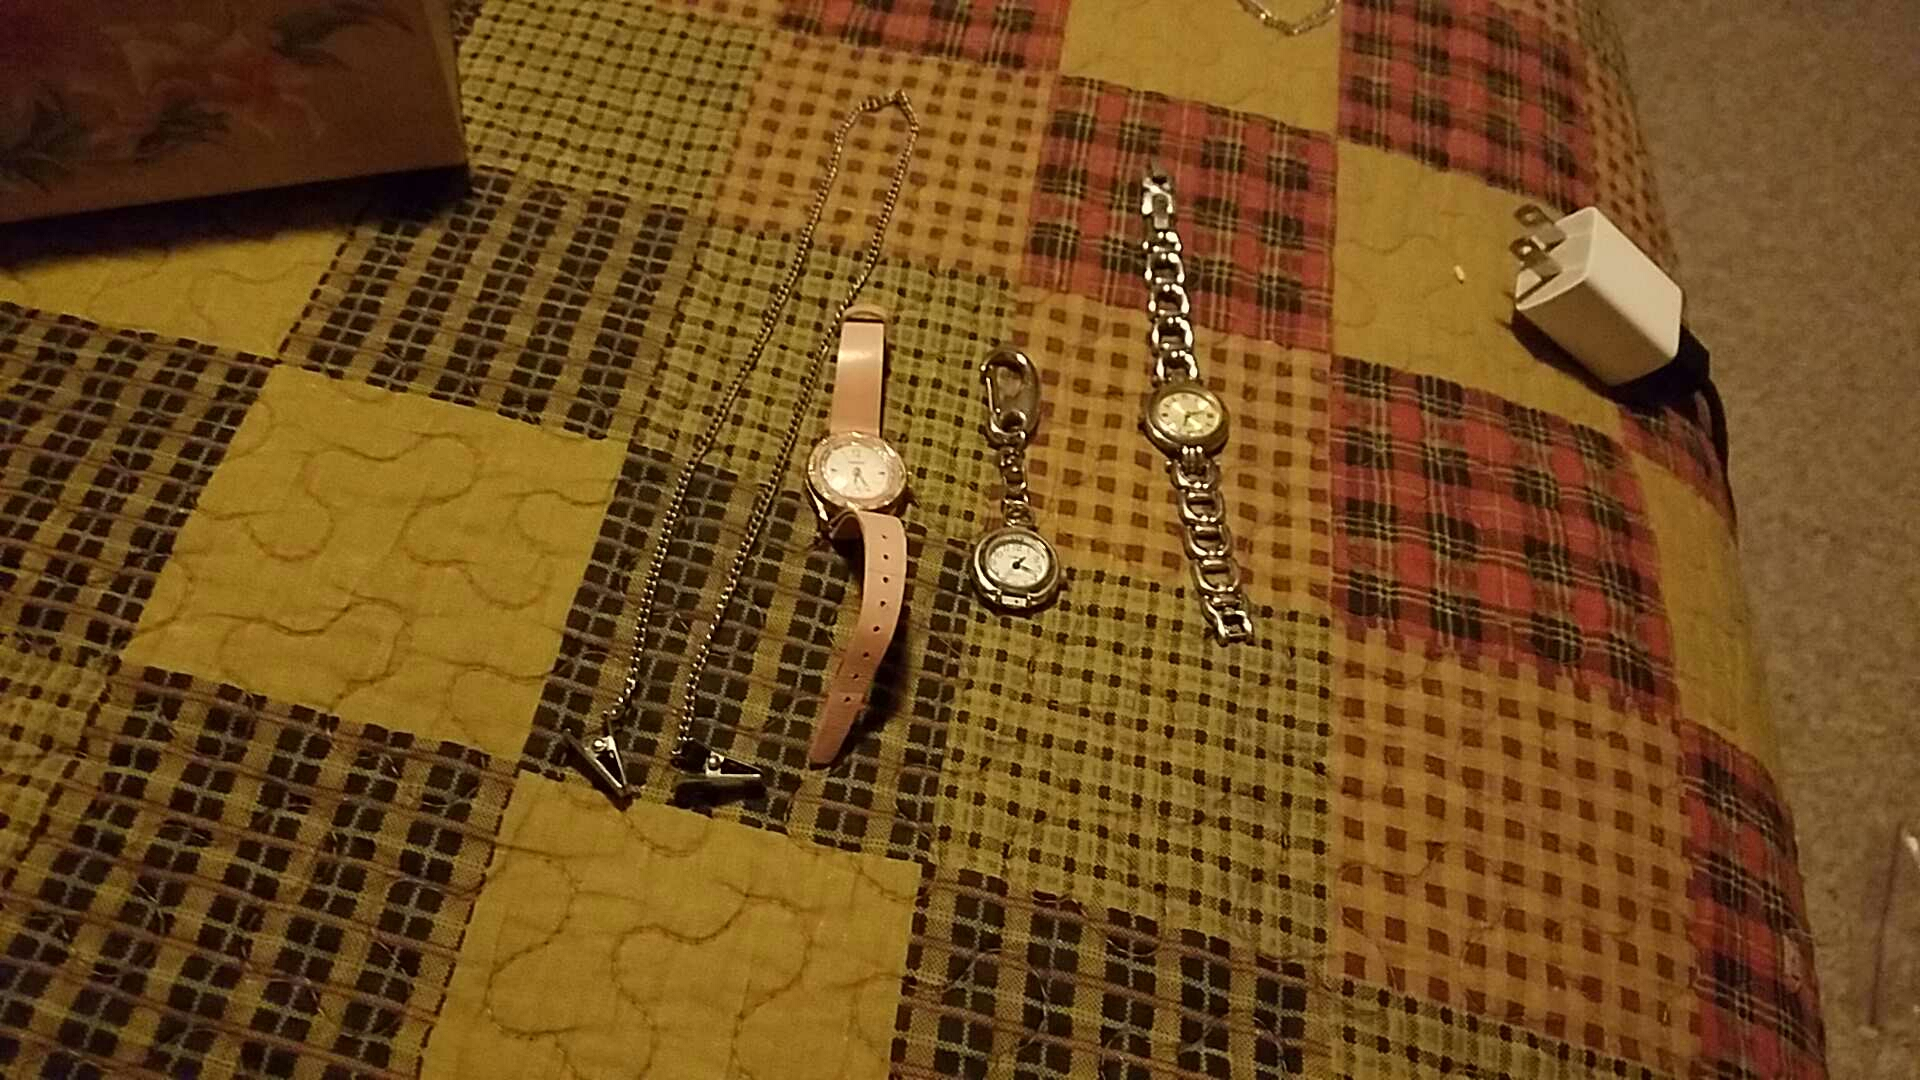 Lot of watches and clip item